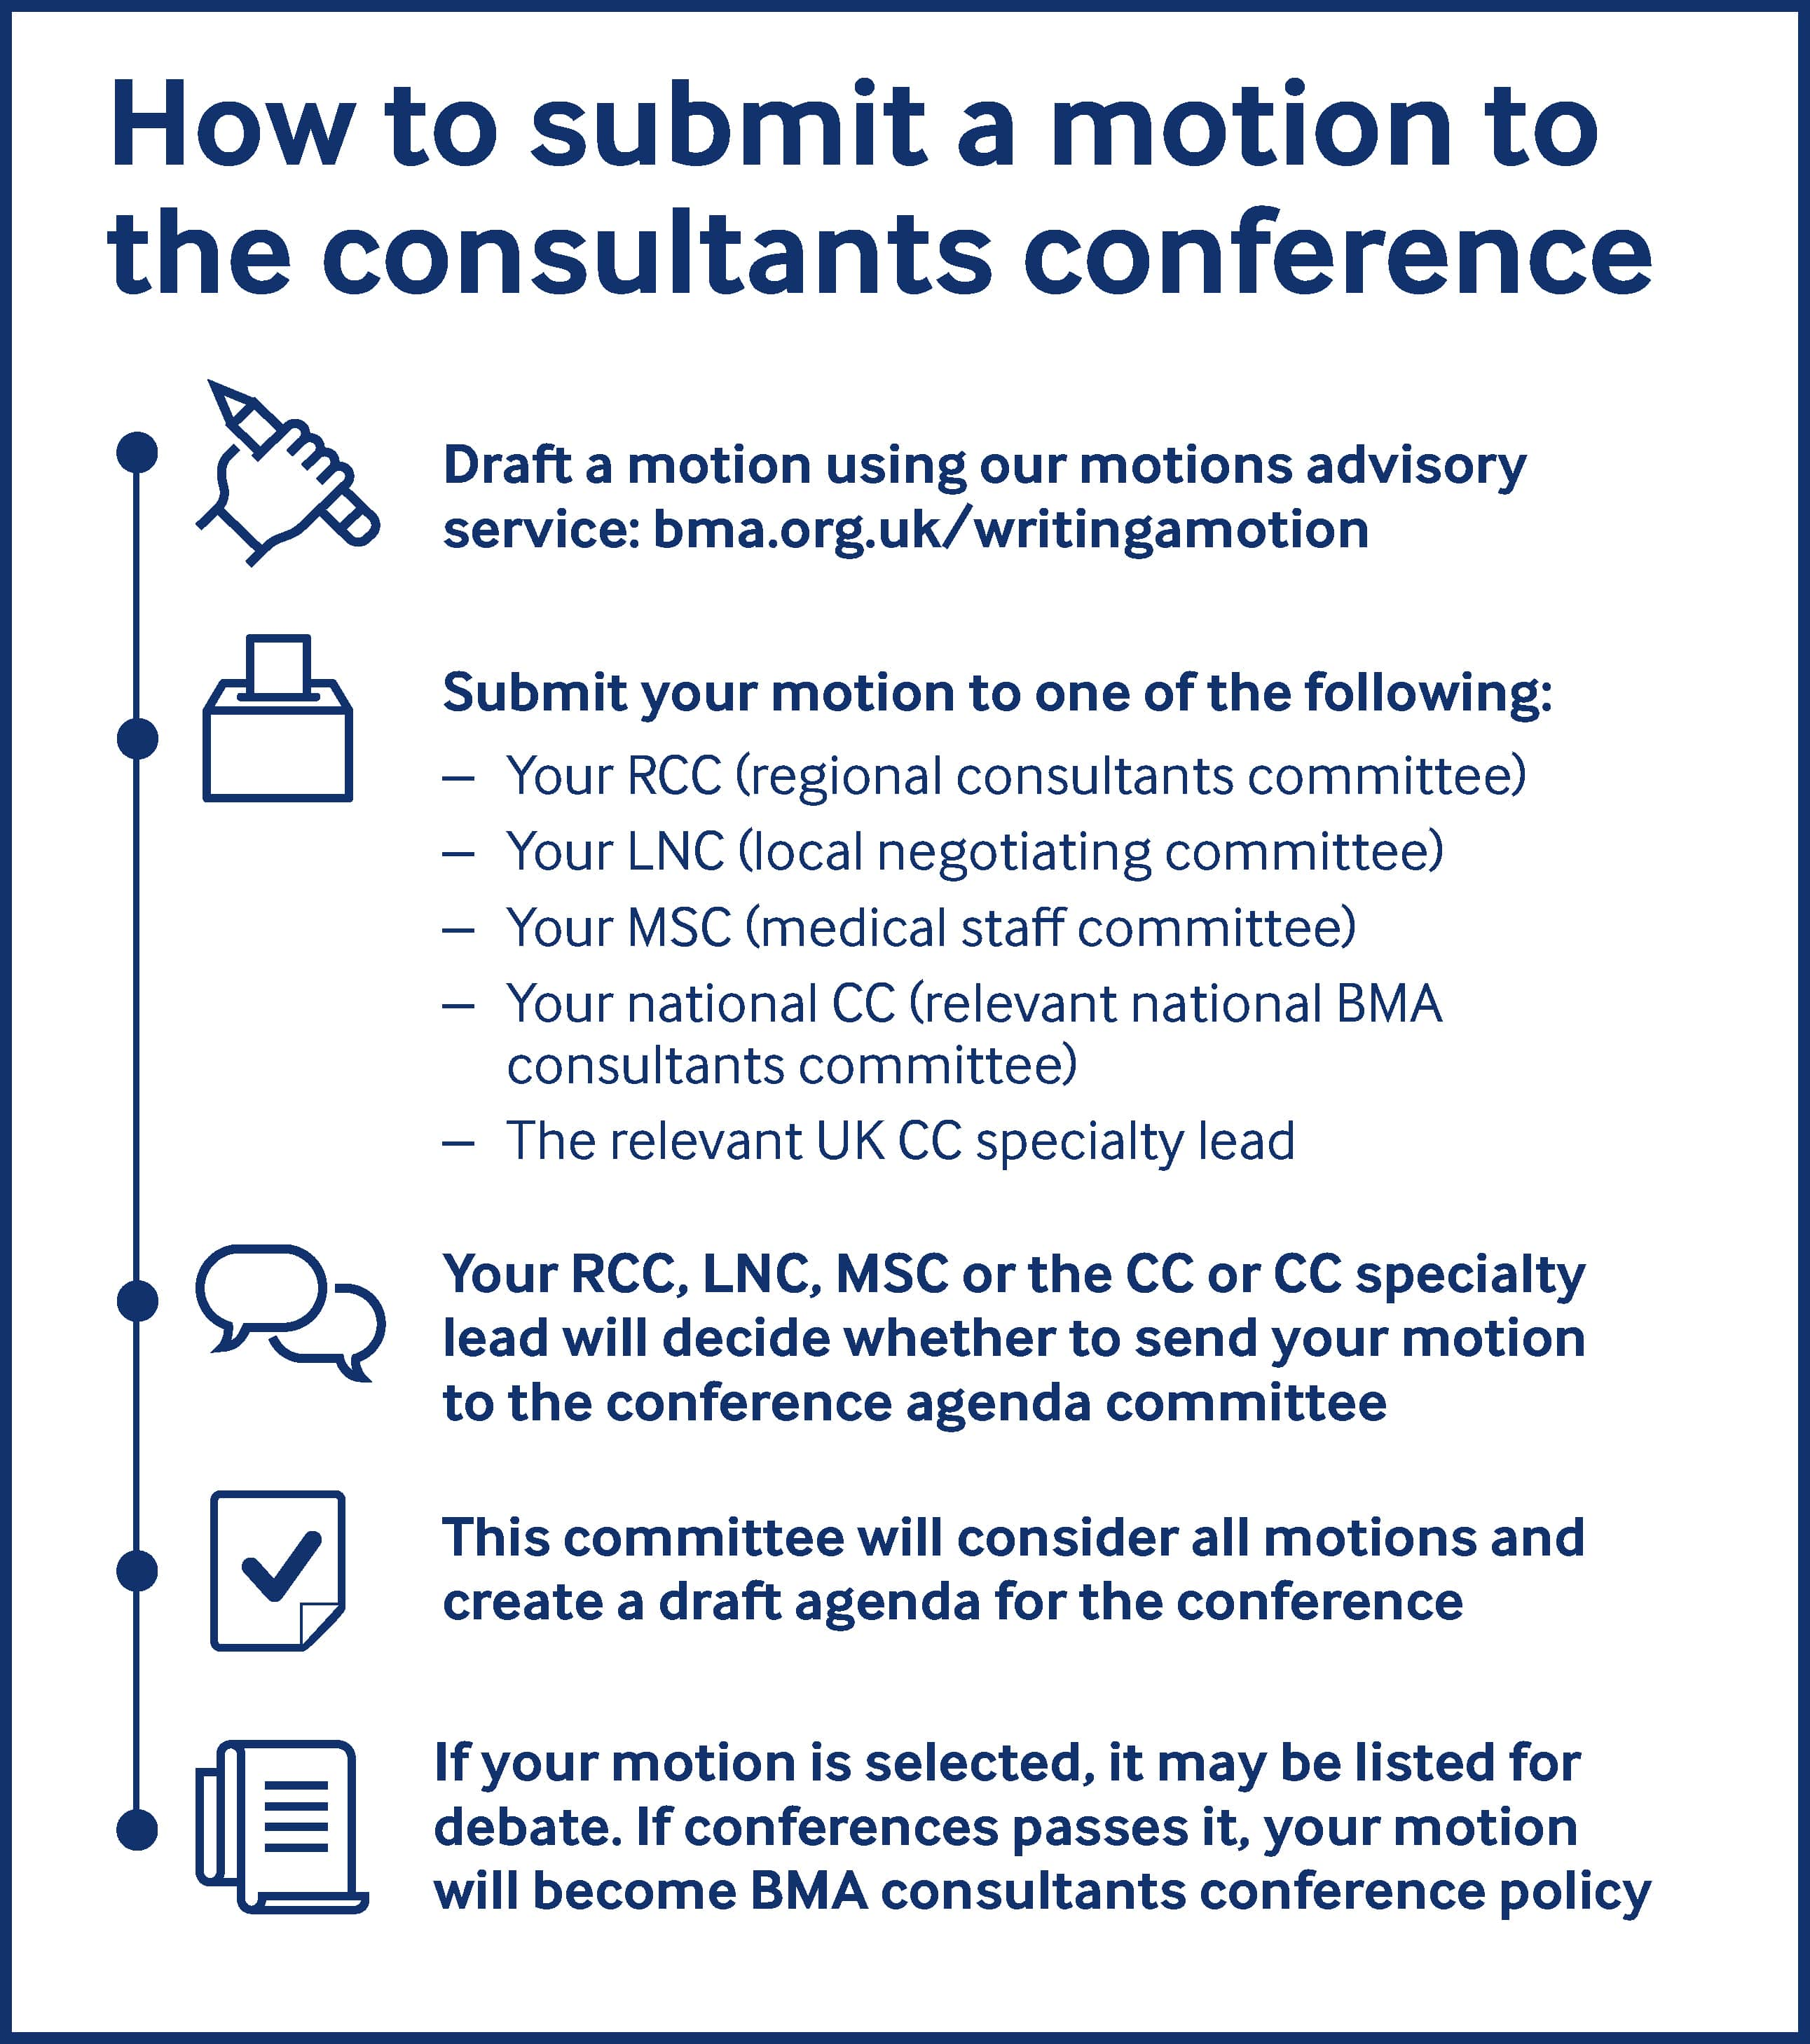 How to submit a motion to the consultants conference: Draft a motion at bma.org.uk/writingamotion; submit it to your RCC, LNC, MSC national CC or CC specialty lead; they send your motion to the conference agenda committee, which drafts the conference agenda. Your motion may be debated and passed as policy